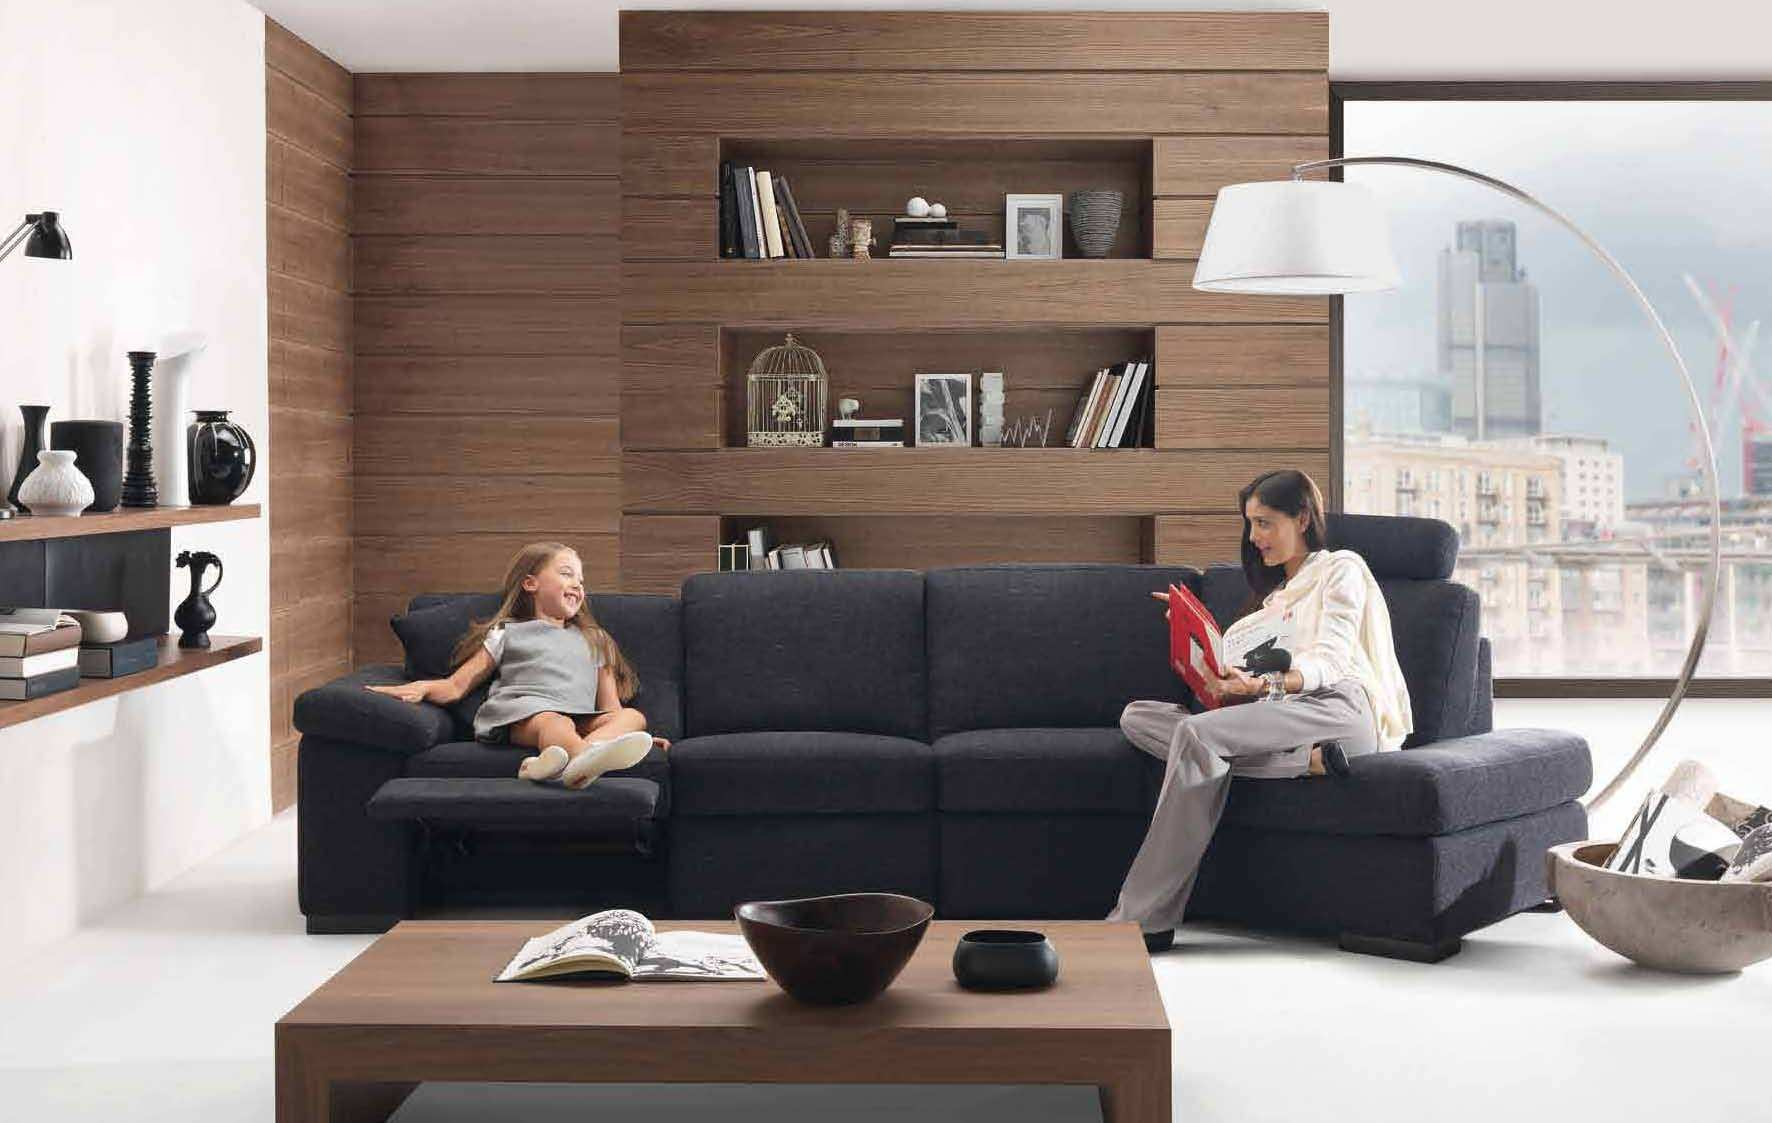 Simple Decorative Wall Cover for Living Room Concept